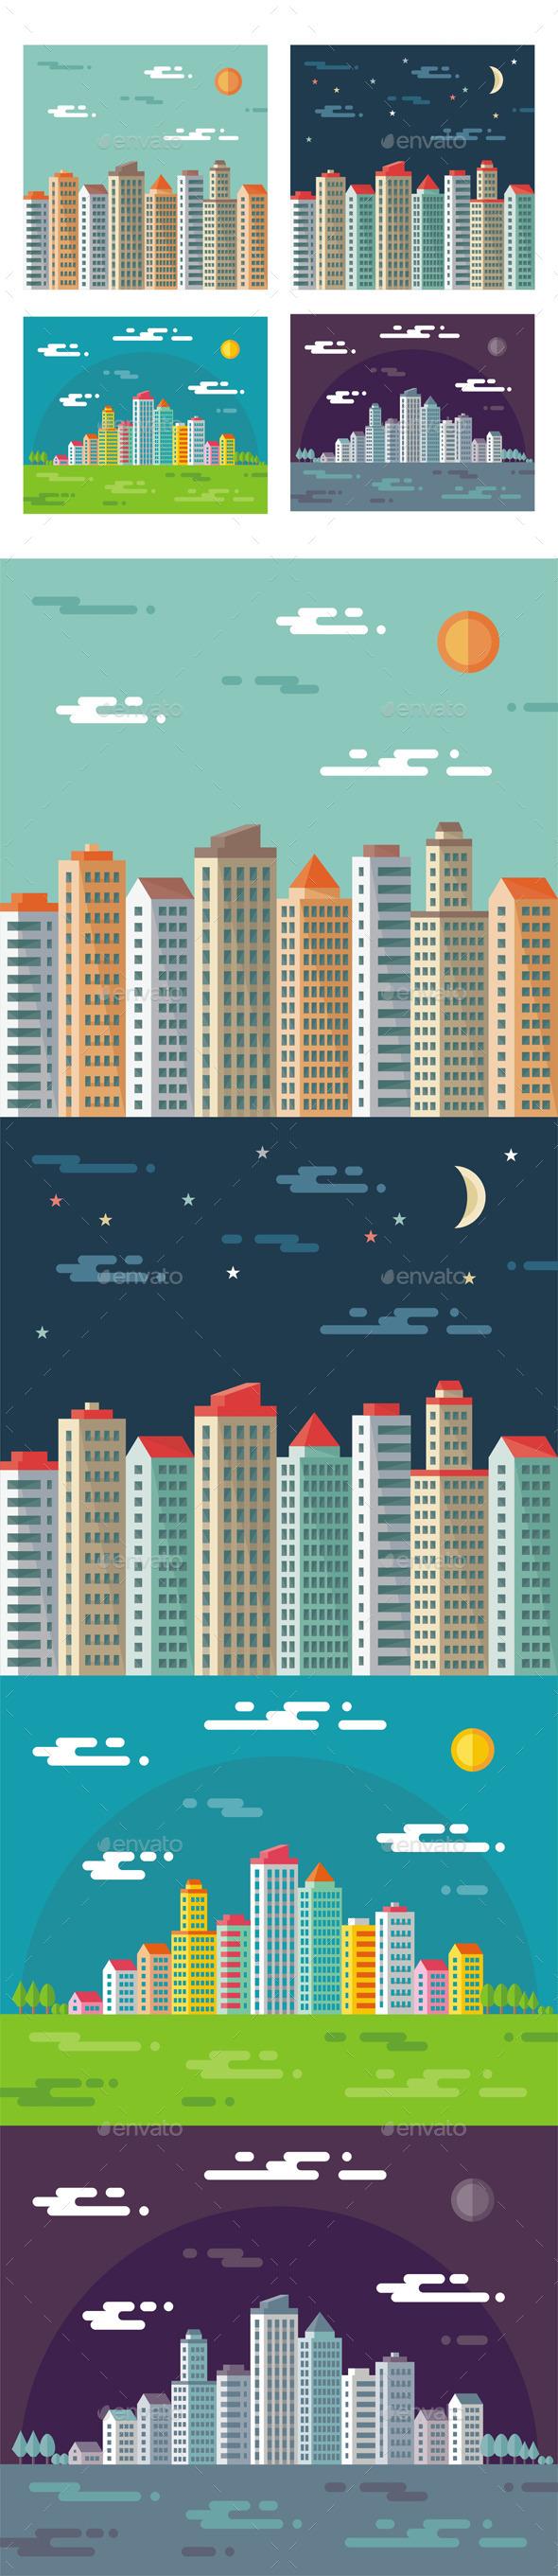 GraphicRiver Cityscape Abstract Buildings in Flat Style 9848142